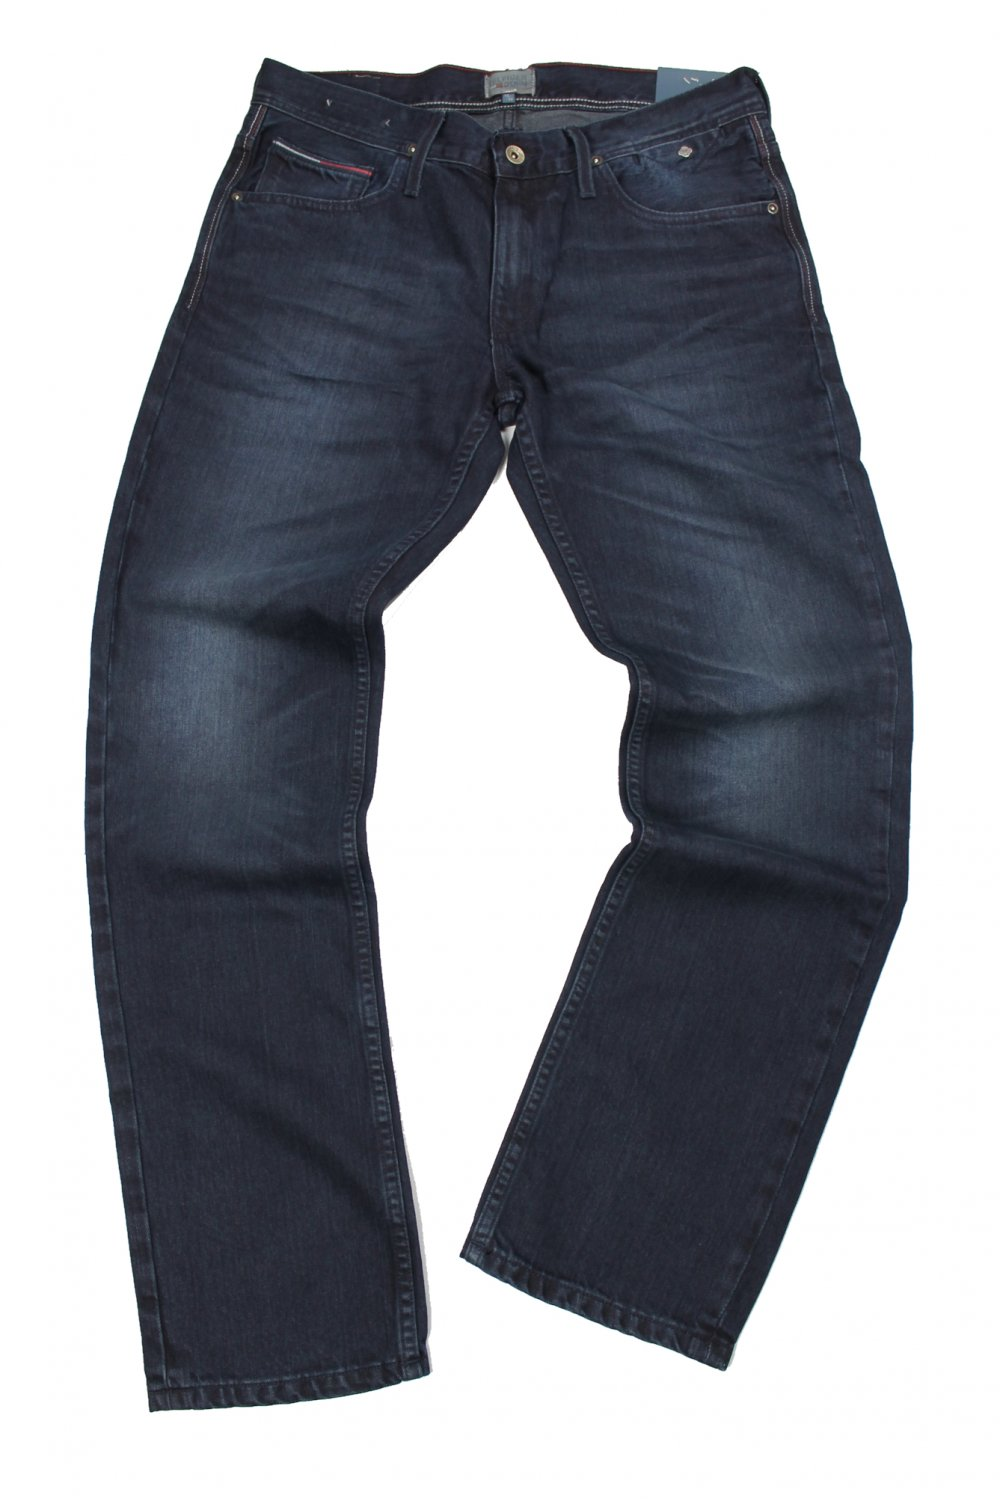 3ce898acac42e4 Tommy Jeans Ryan Straight Leg Jeans (Baker Blue Black) - Jeans from ...